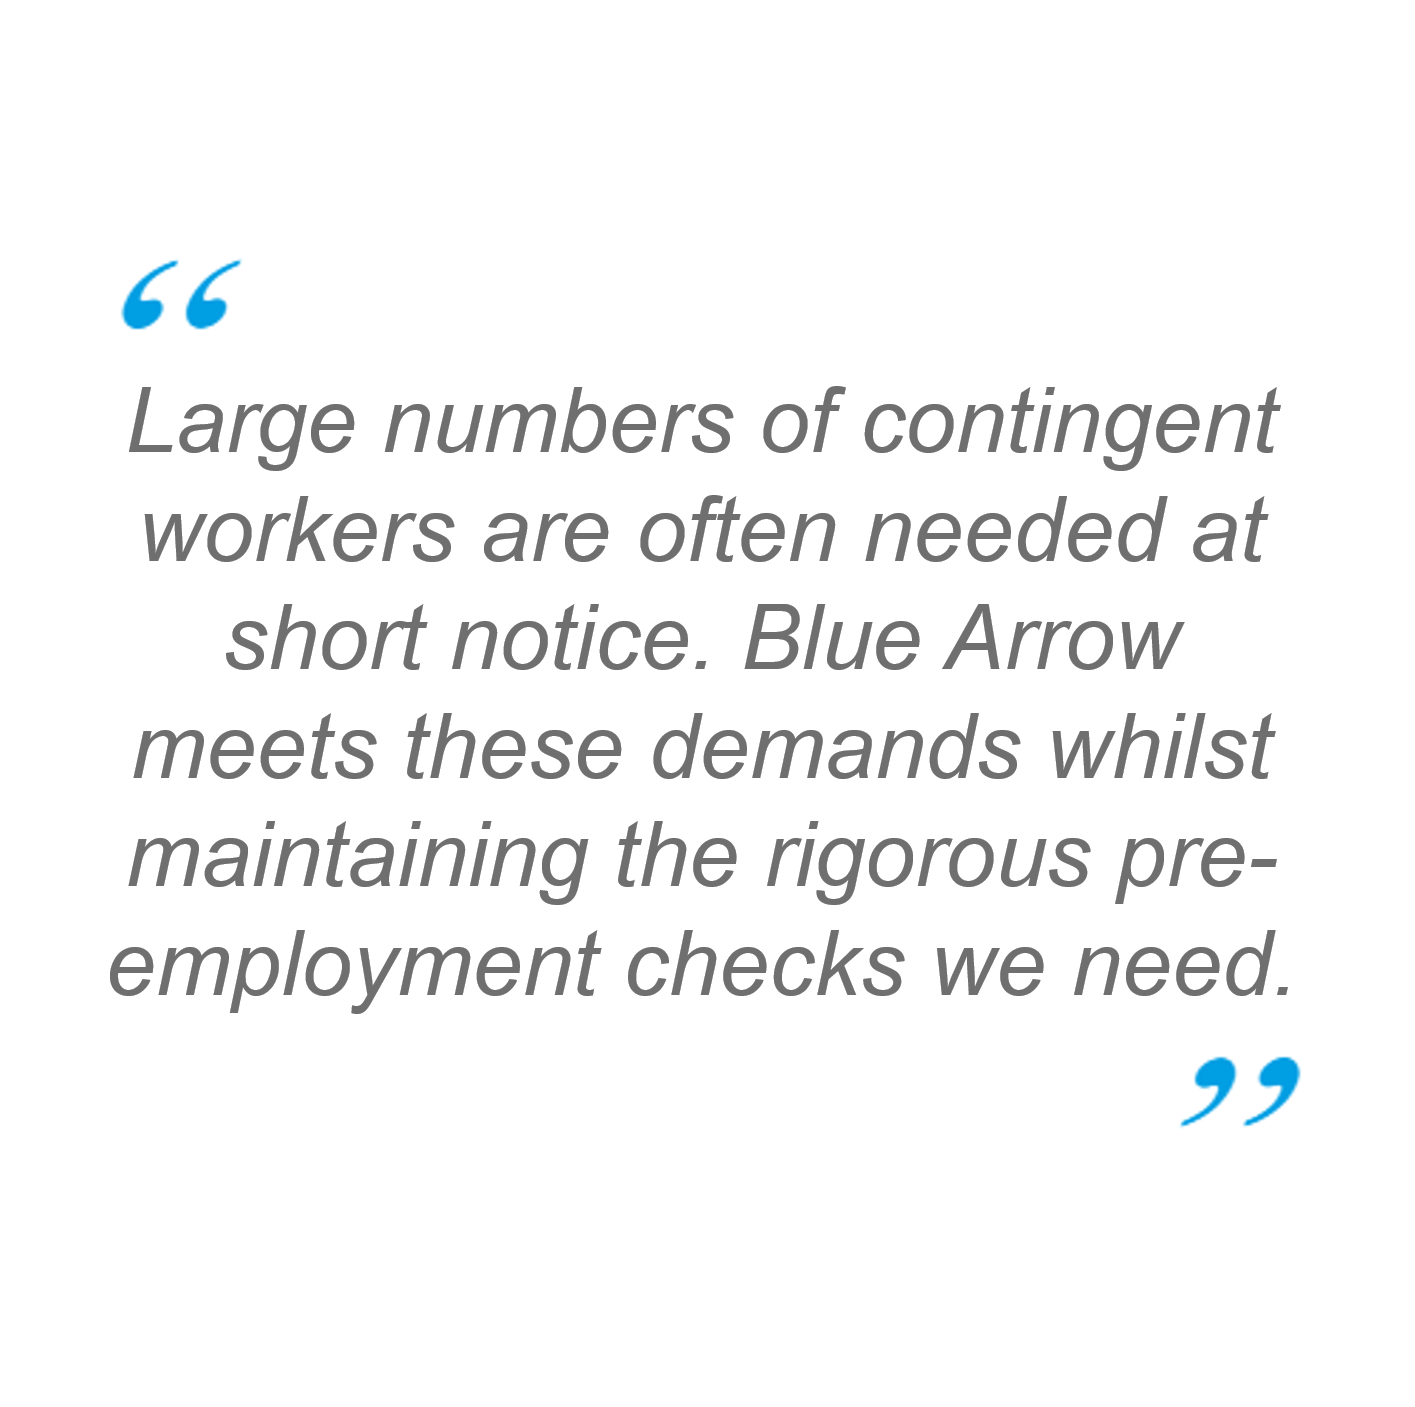 Quote: Large numbers of contingent workers are often needed at short notice. Blue Arrow meets these demands whilst maintaining the rigorous pre-employment checks we need.